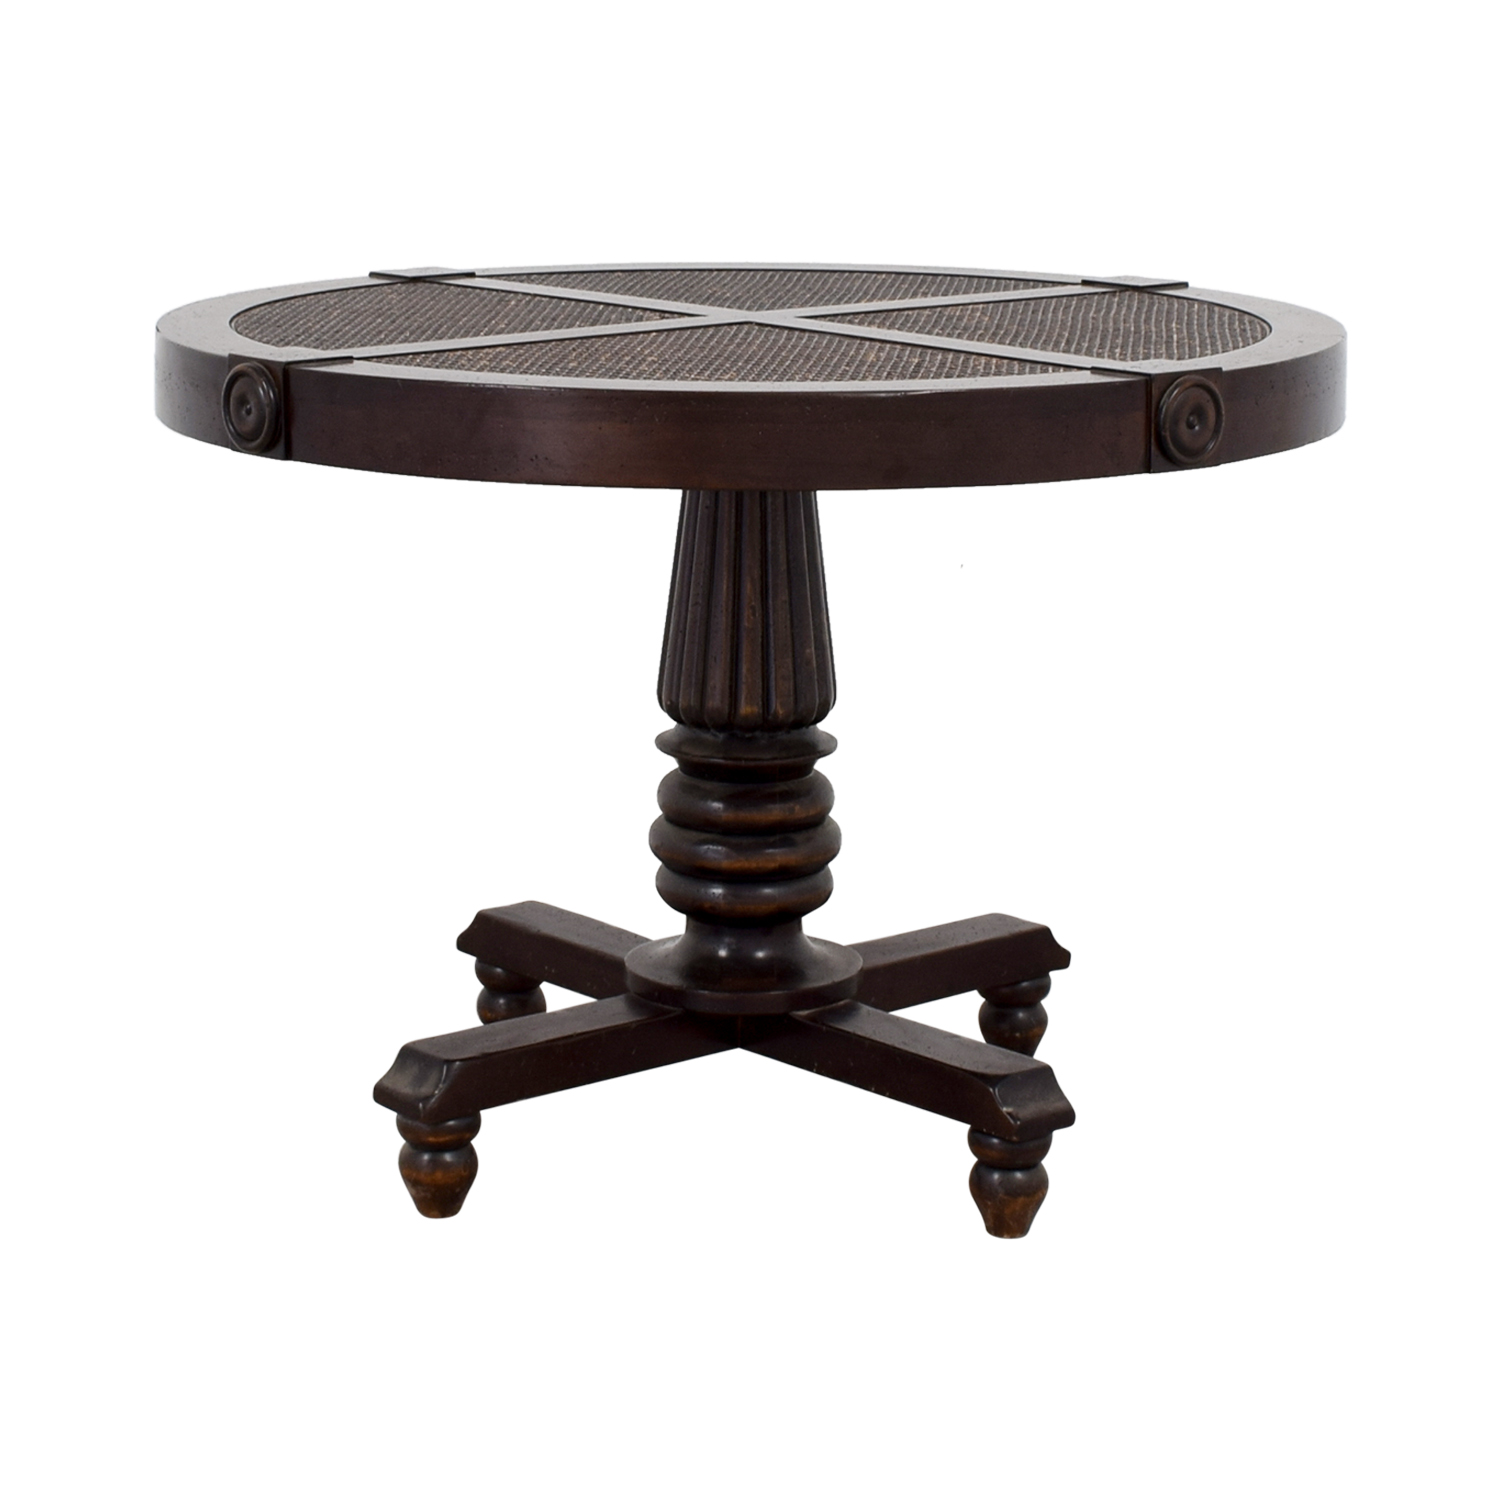 shop Furniture Masters Furniture Masters Wood Cane Weave Dining Table online